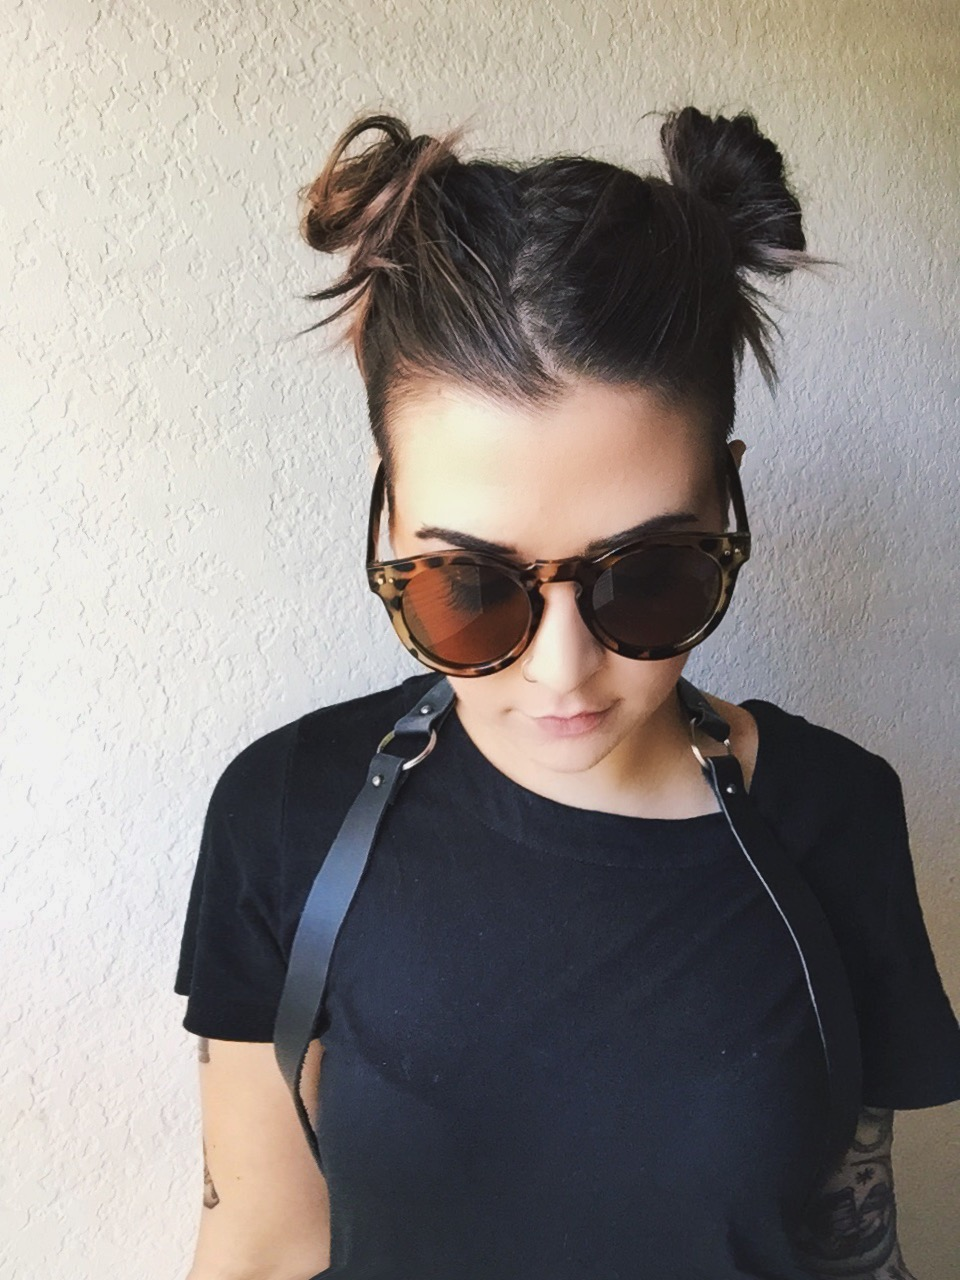 cool hairstyles for girls how to style an undercut 5 simple ways girrlscout 12141